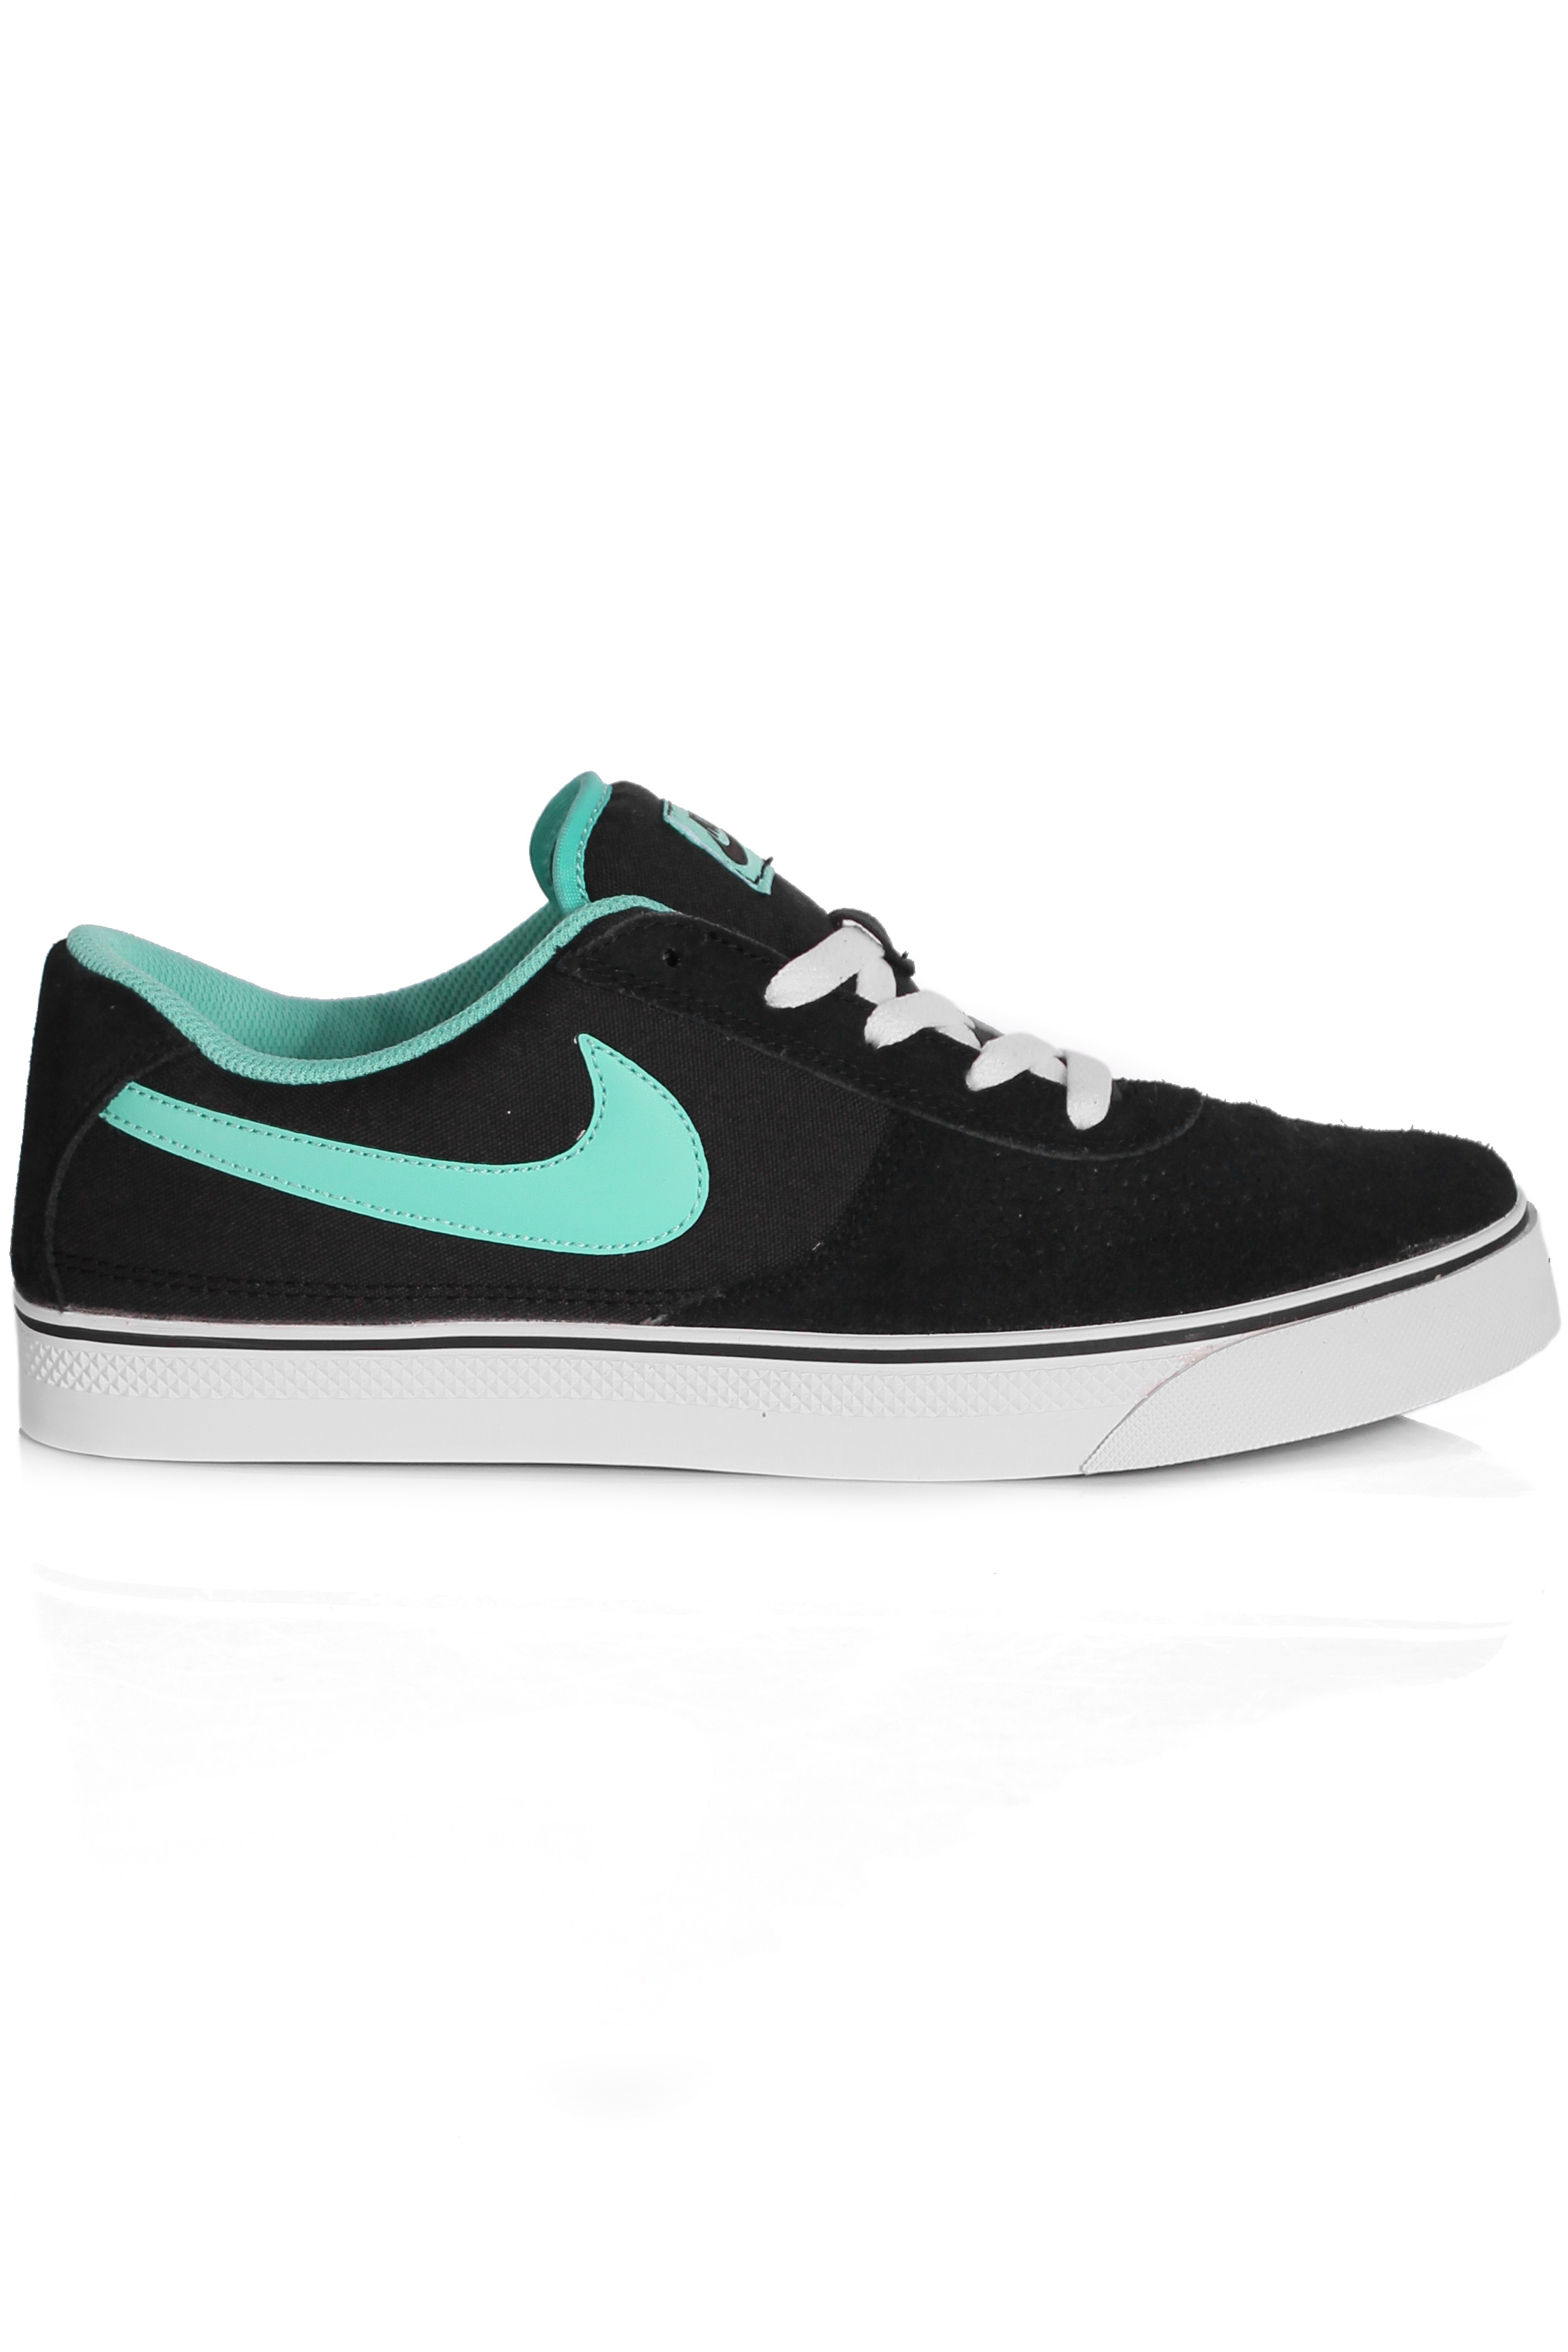 Buty Nike Mavrk Low (Black/Crystal Mint)